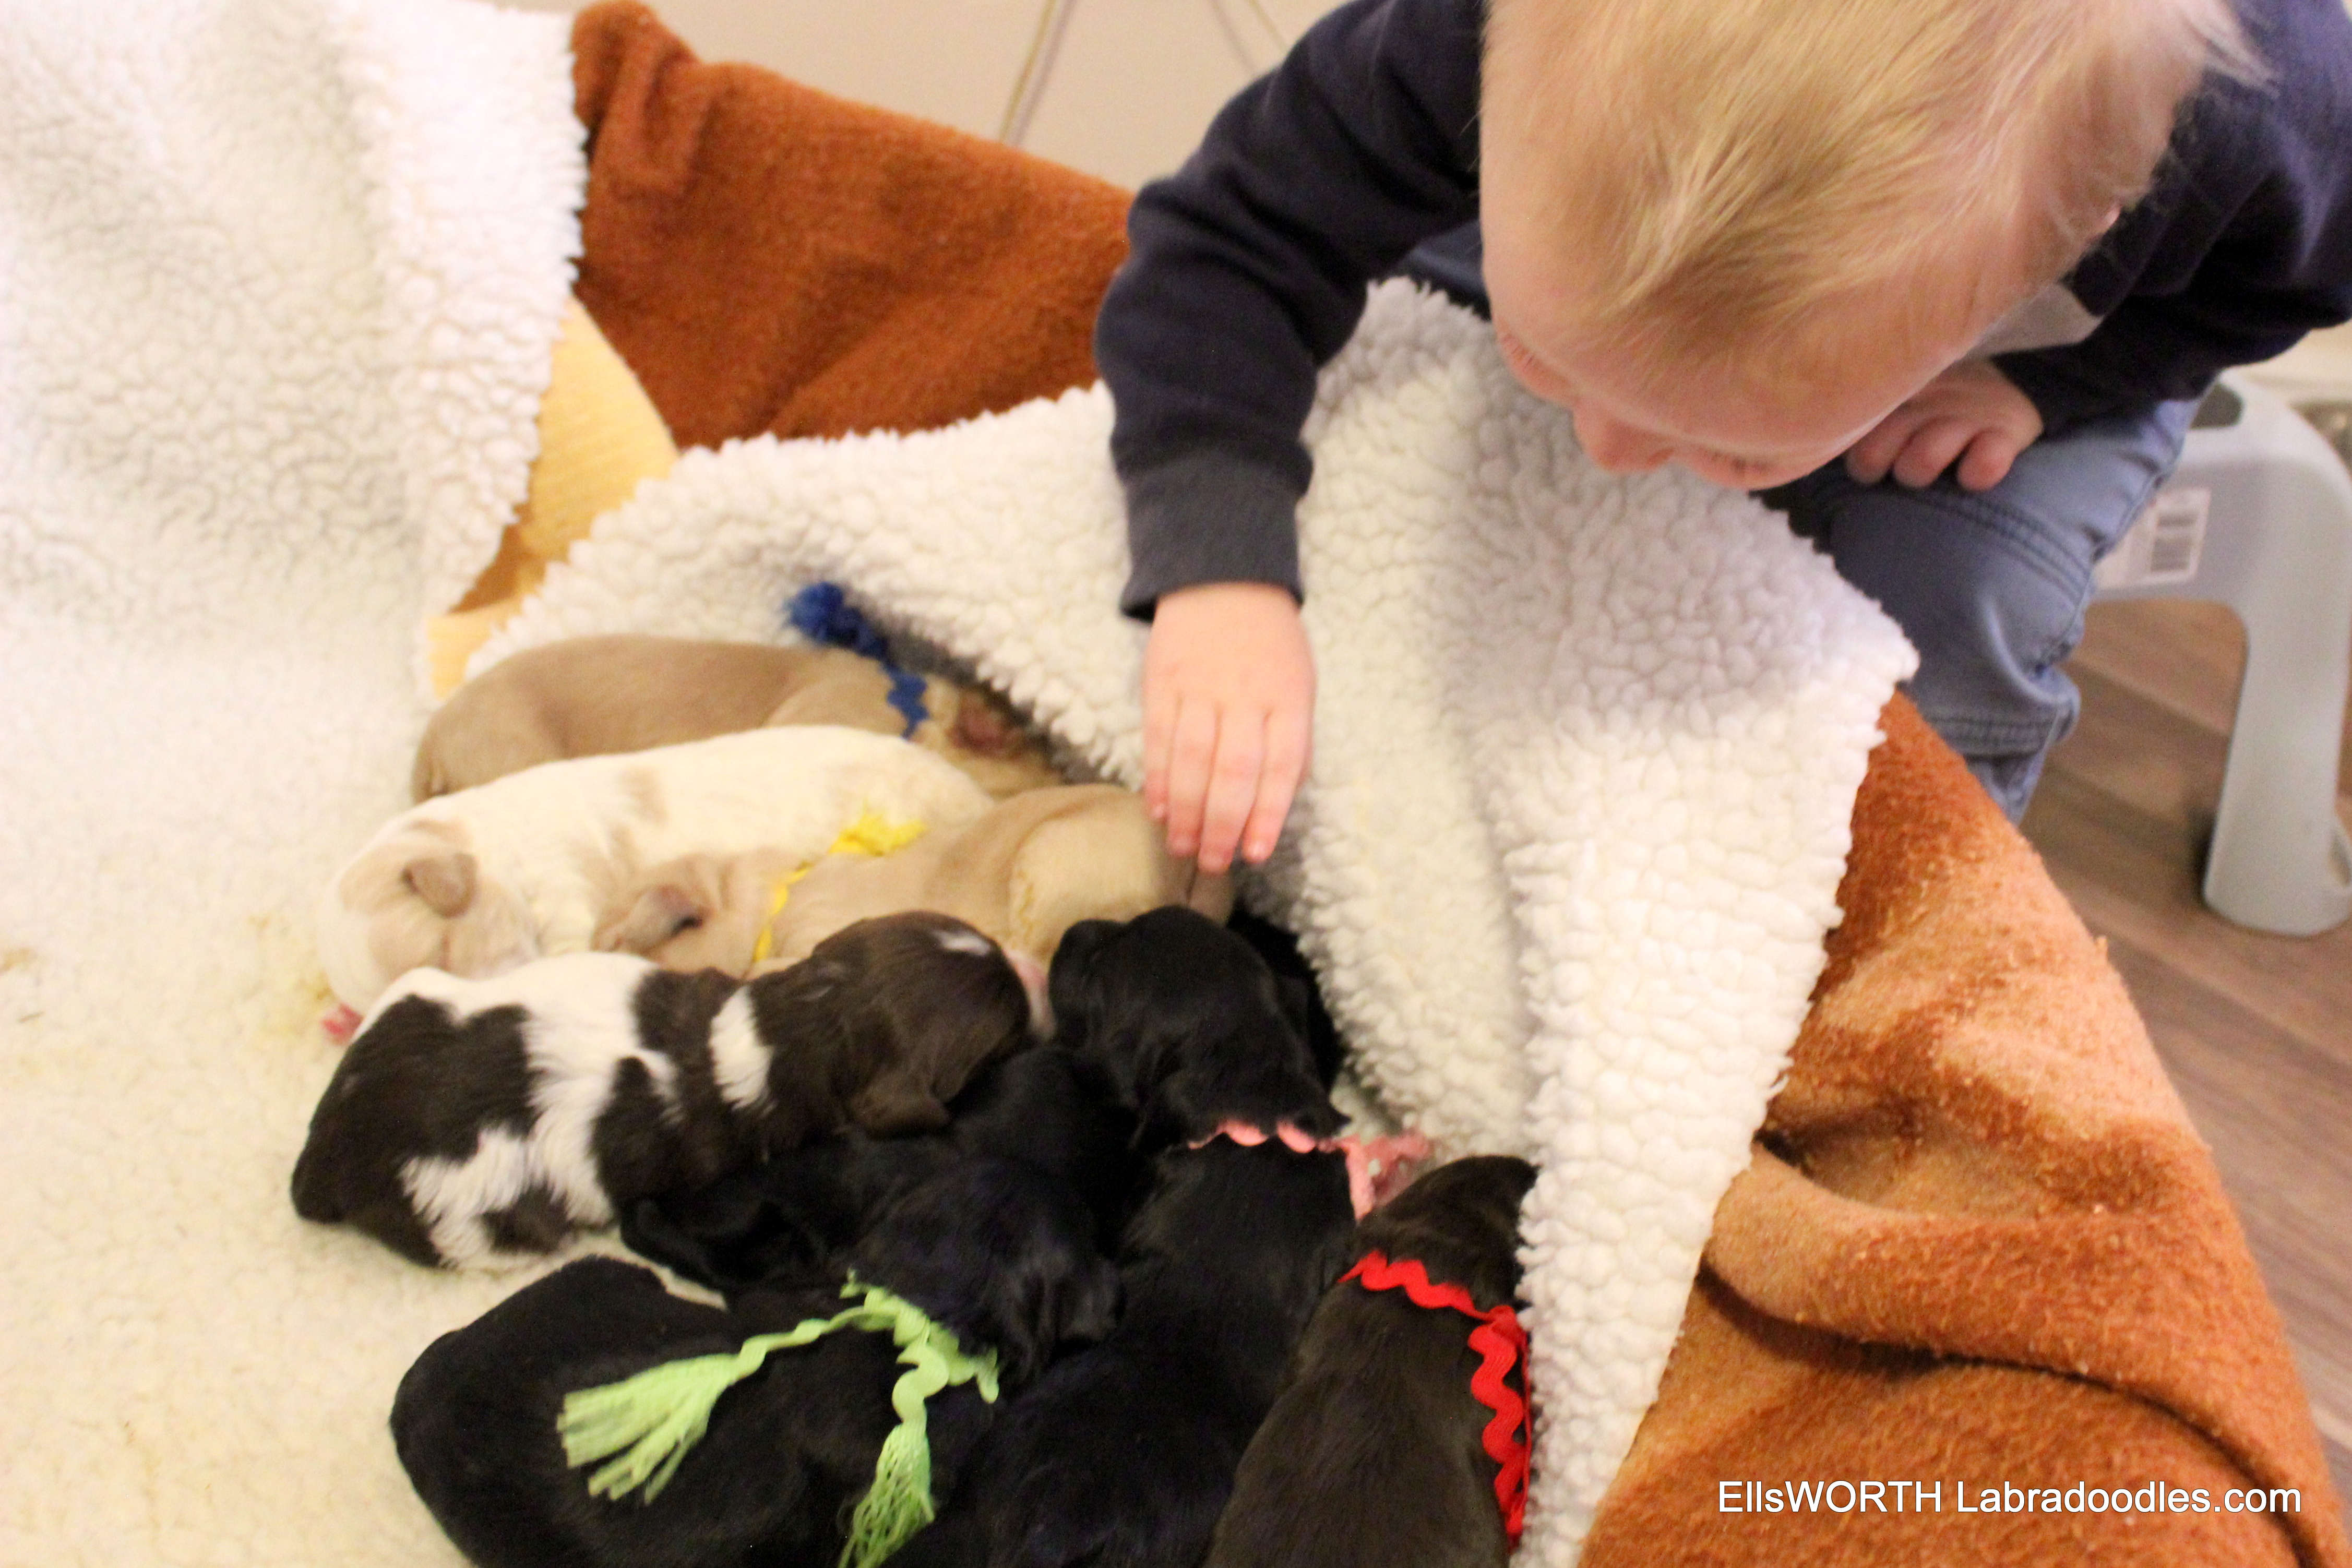 My Grandson  came to see the puppies